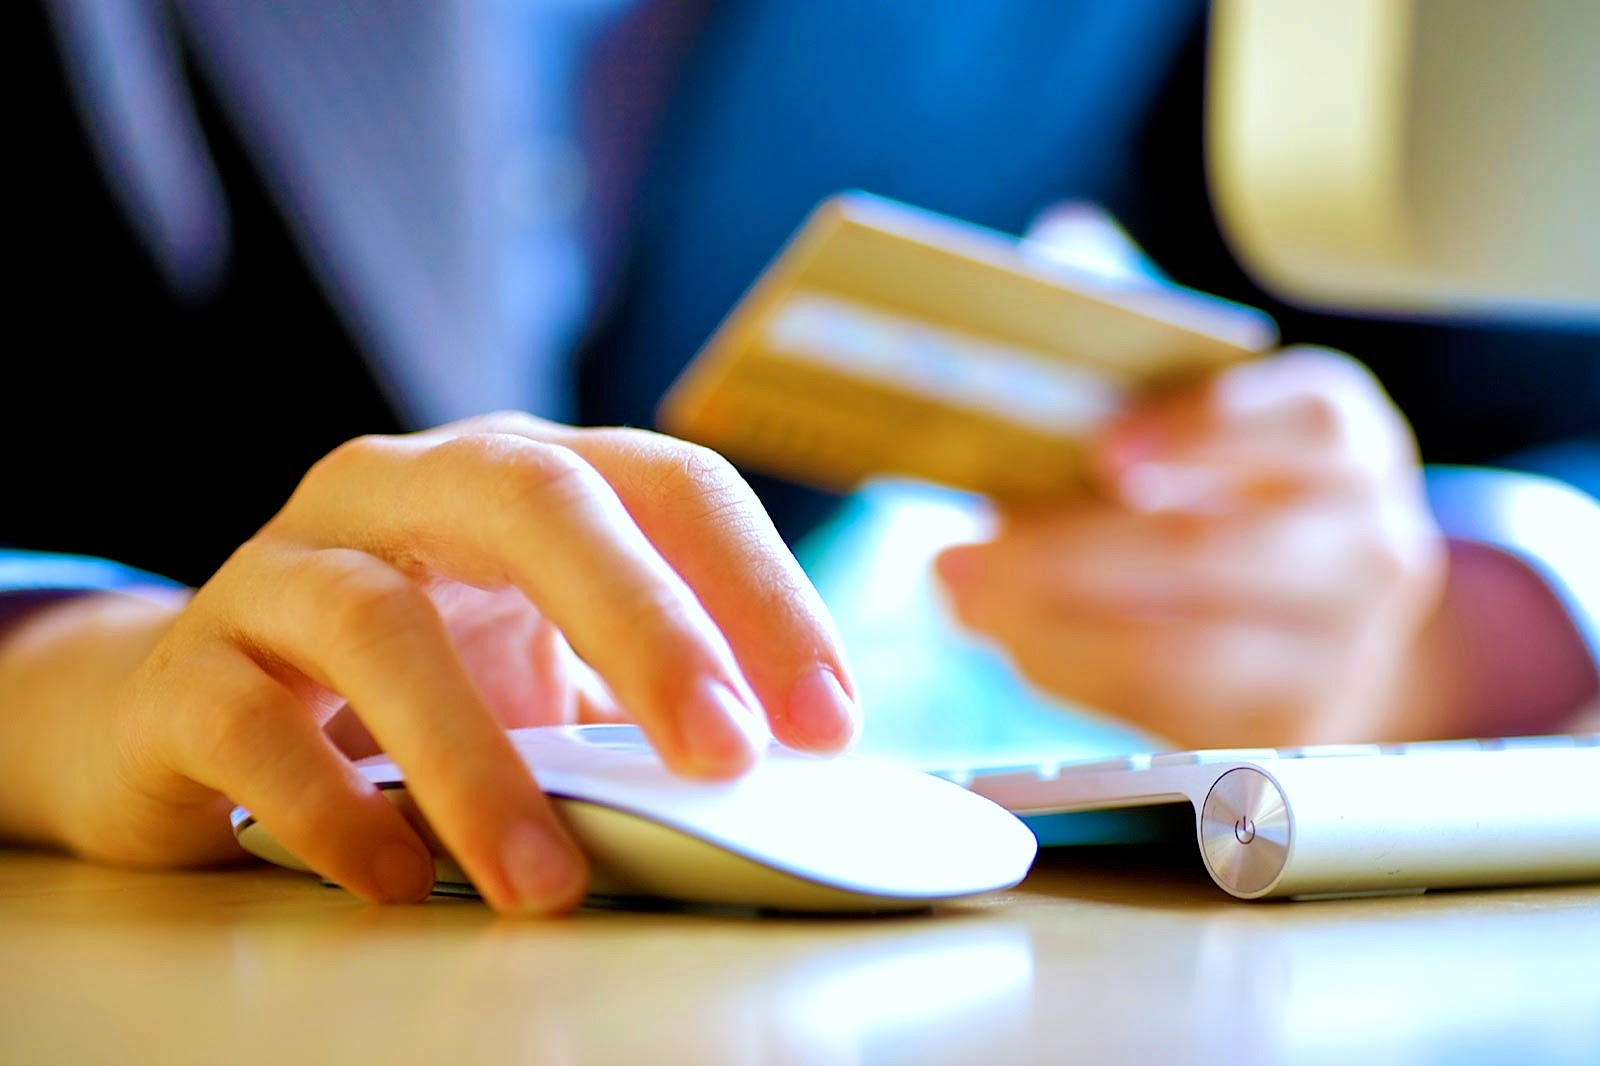 e-commerce terms and conditions